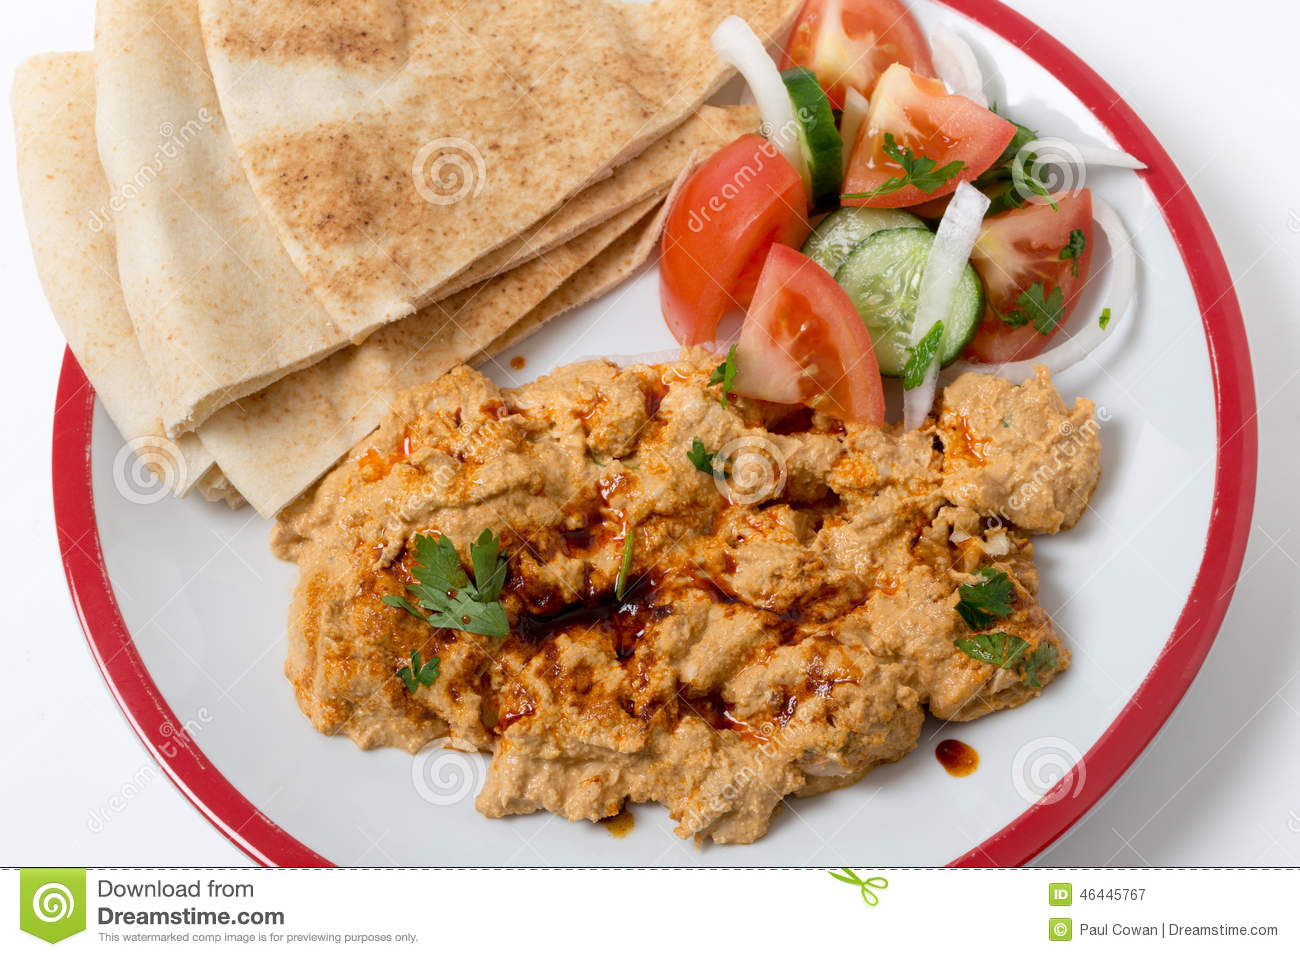 Circassian chicken with salad and bread seen from above